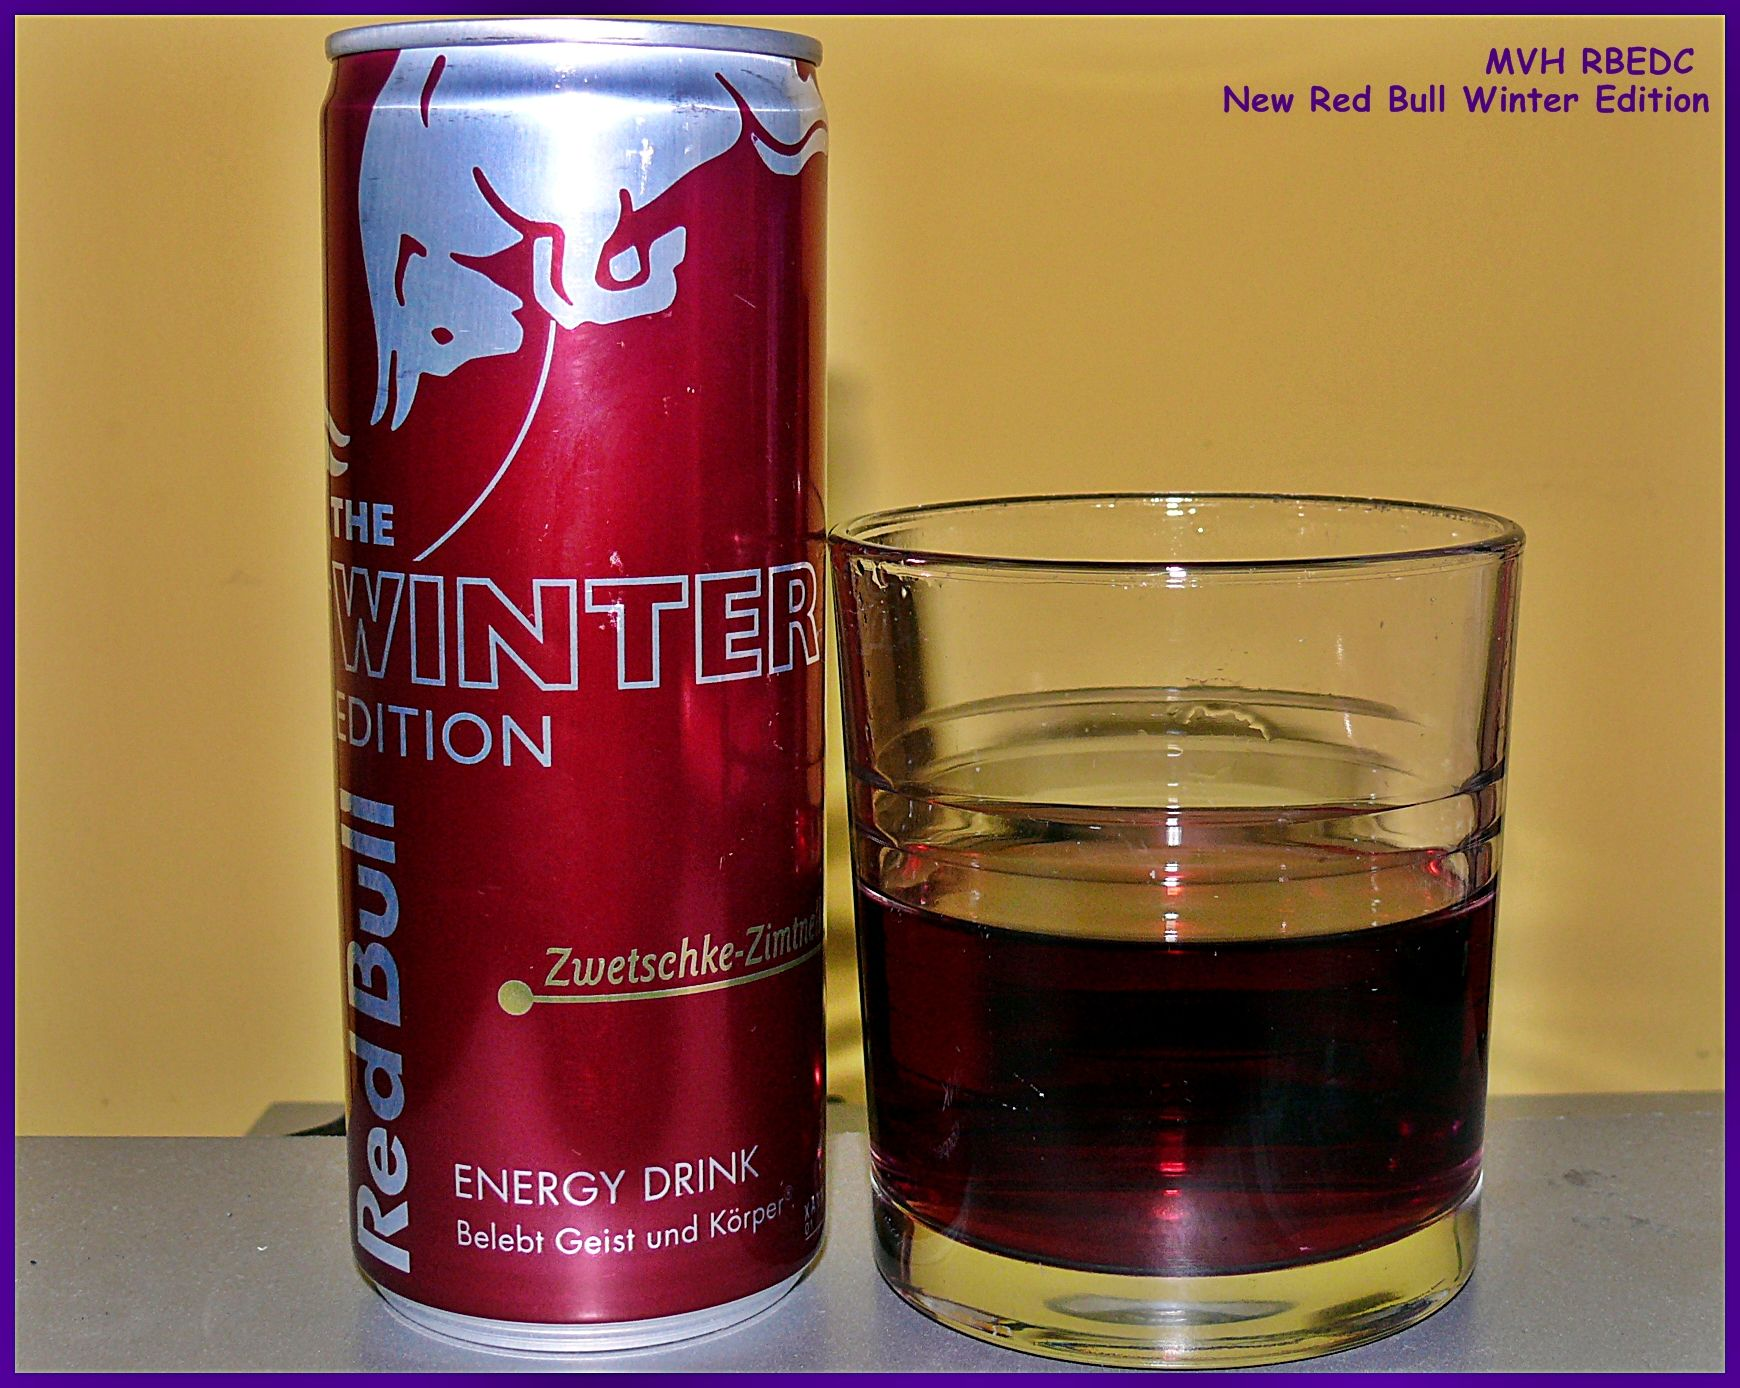 new red bull winter edition plum cinnamon flavor fine. Black Bedroom Furniture Sets. Home Design Ideas